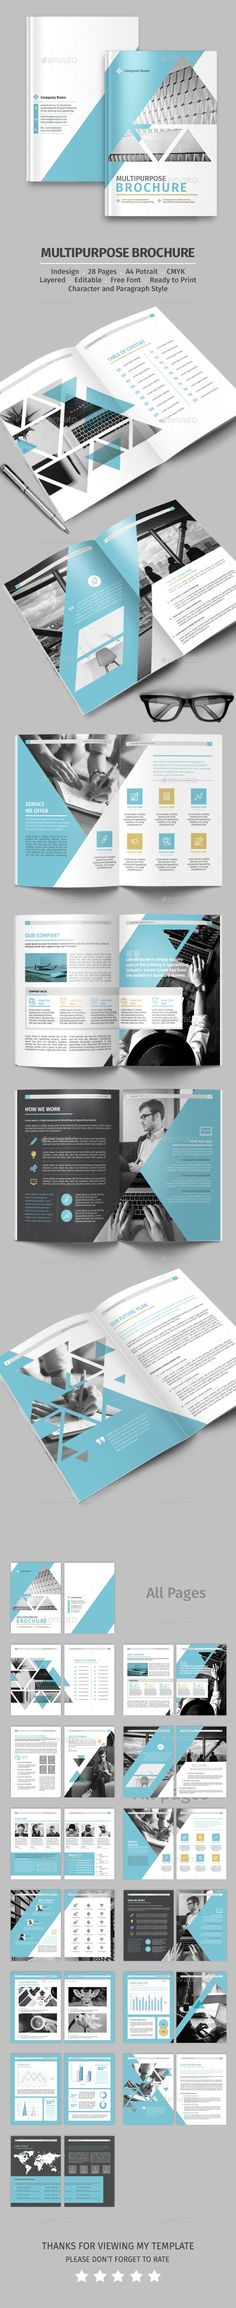 Multipurpose Brochure Design - Corporate Brochure Template InDesign INDD. Download here: http://graphicriver.net/item/multipurpose-brochure/16471163?s_rank=433&ref=yinkira